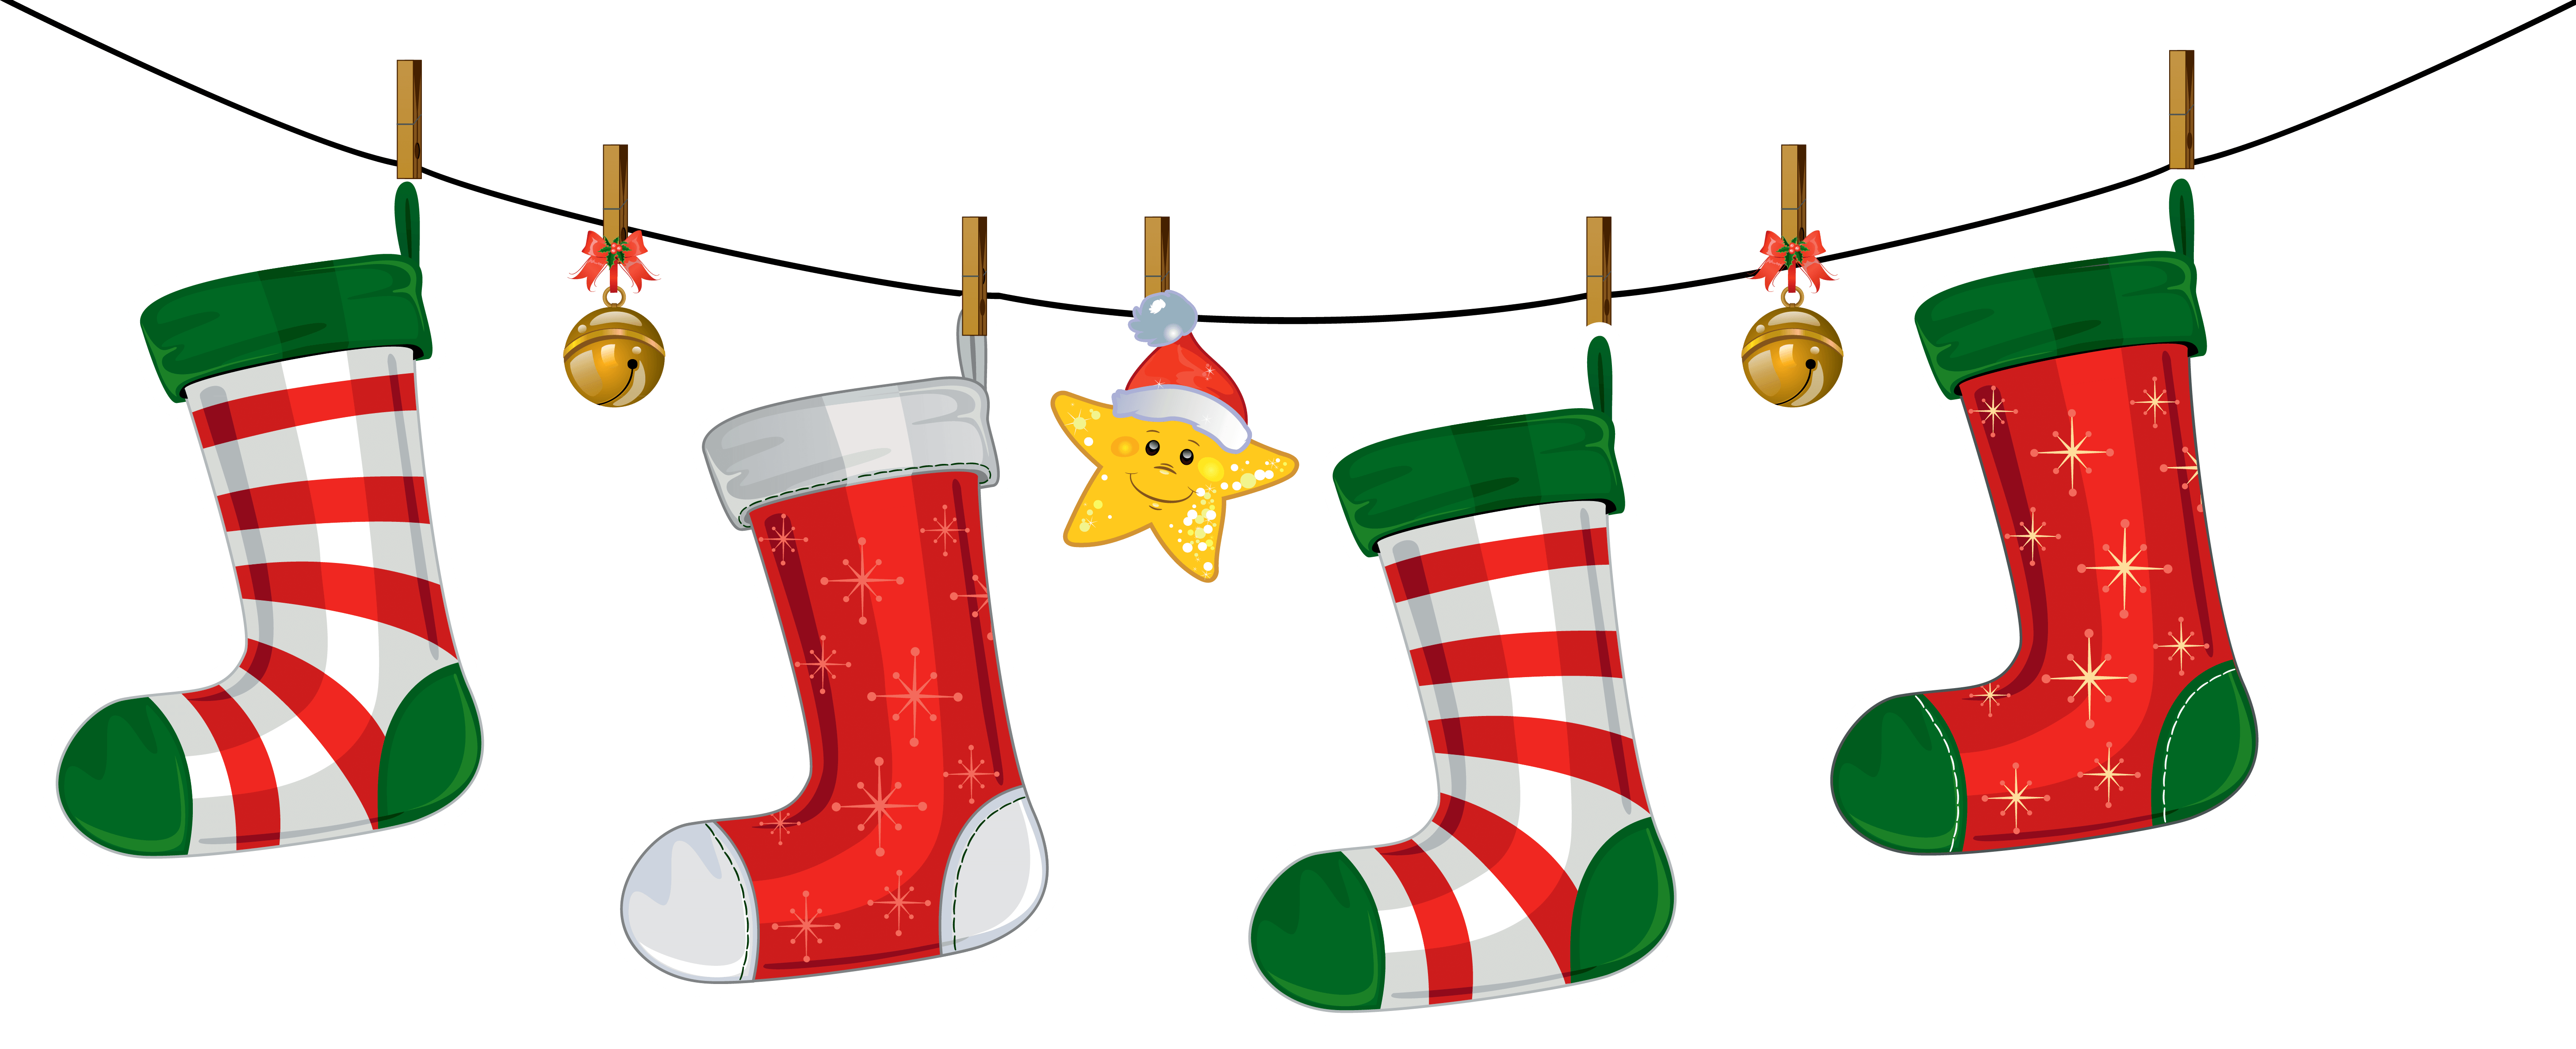 5825x2372 Christmas Decorations Cliparts